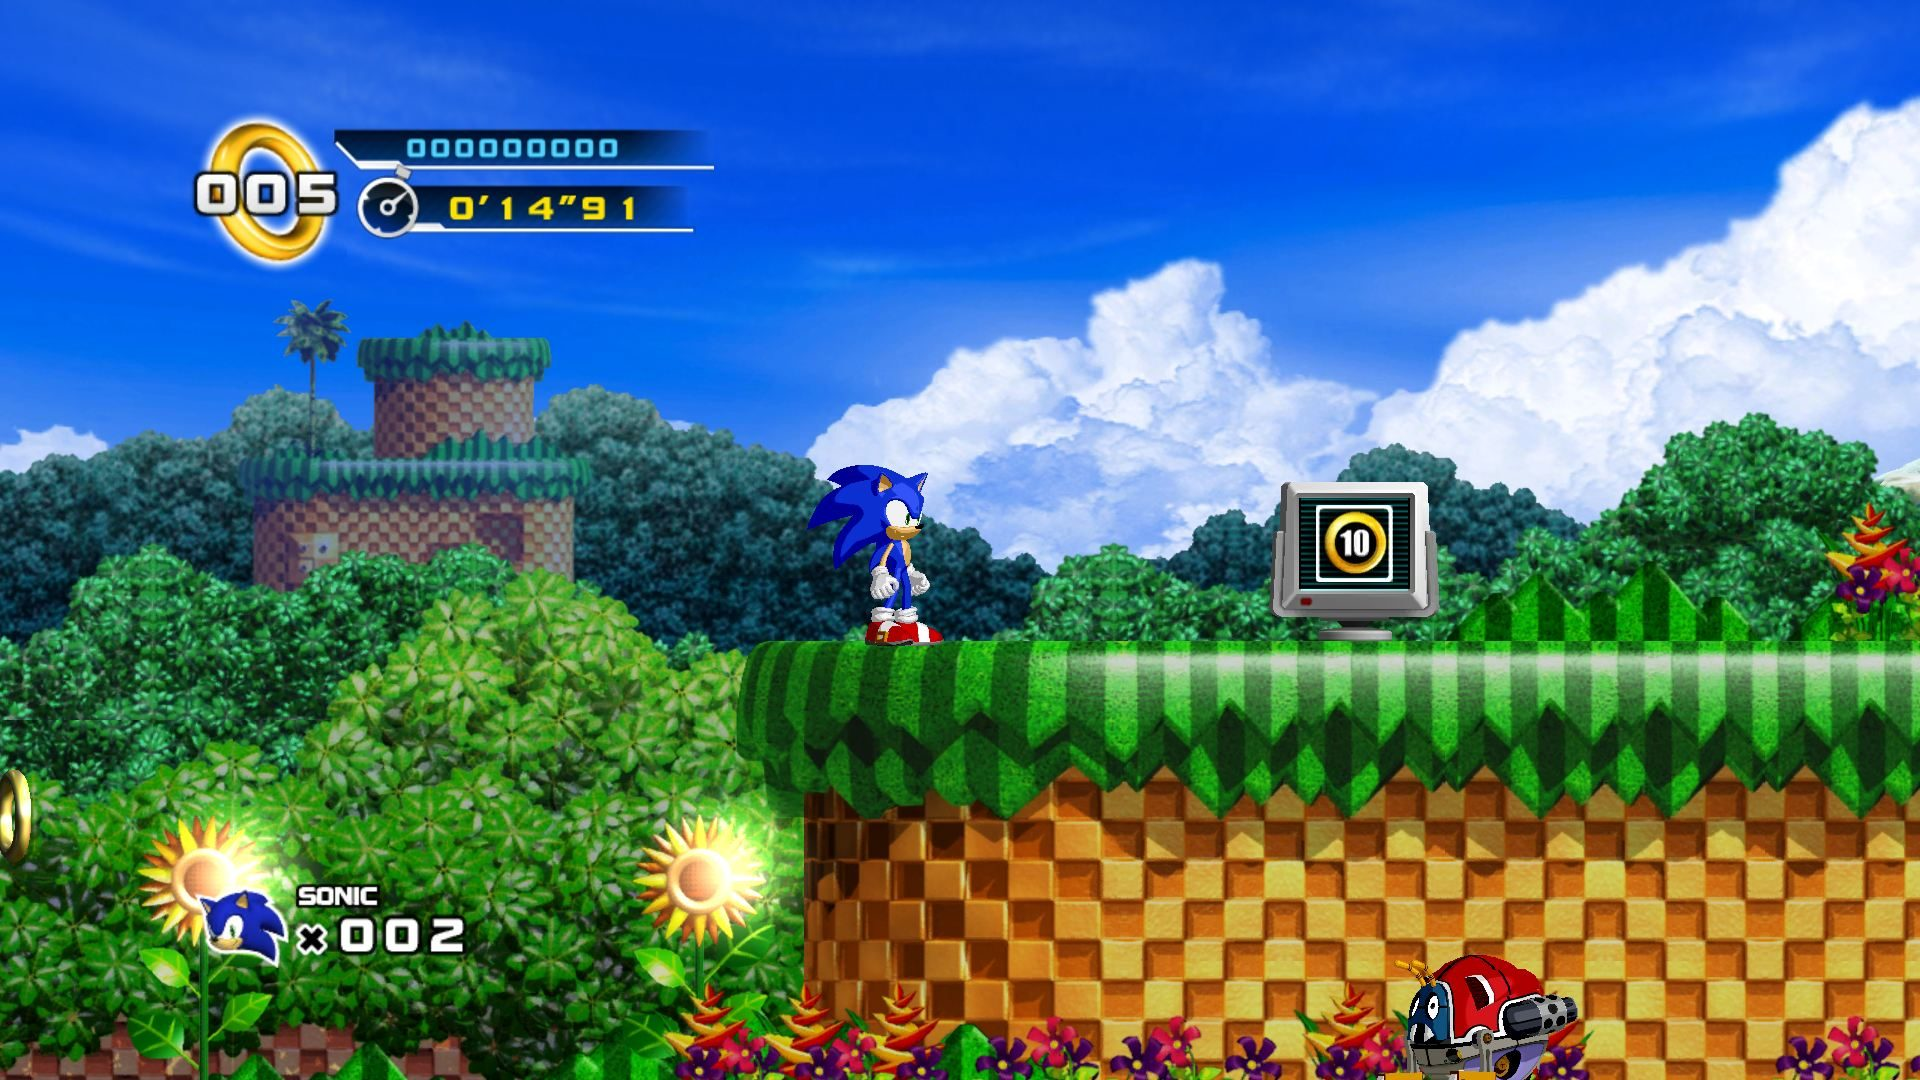 sonic-the-hedgehog-4_1